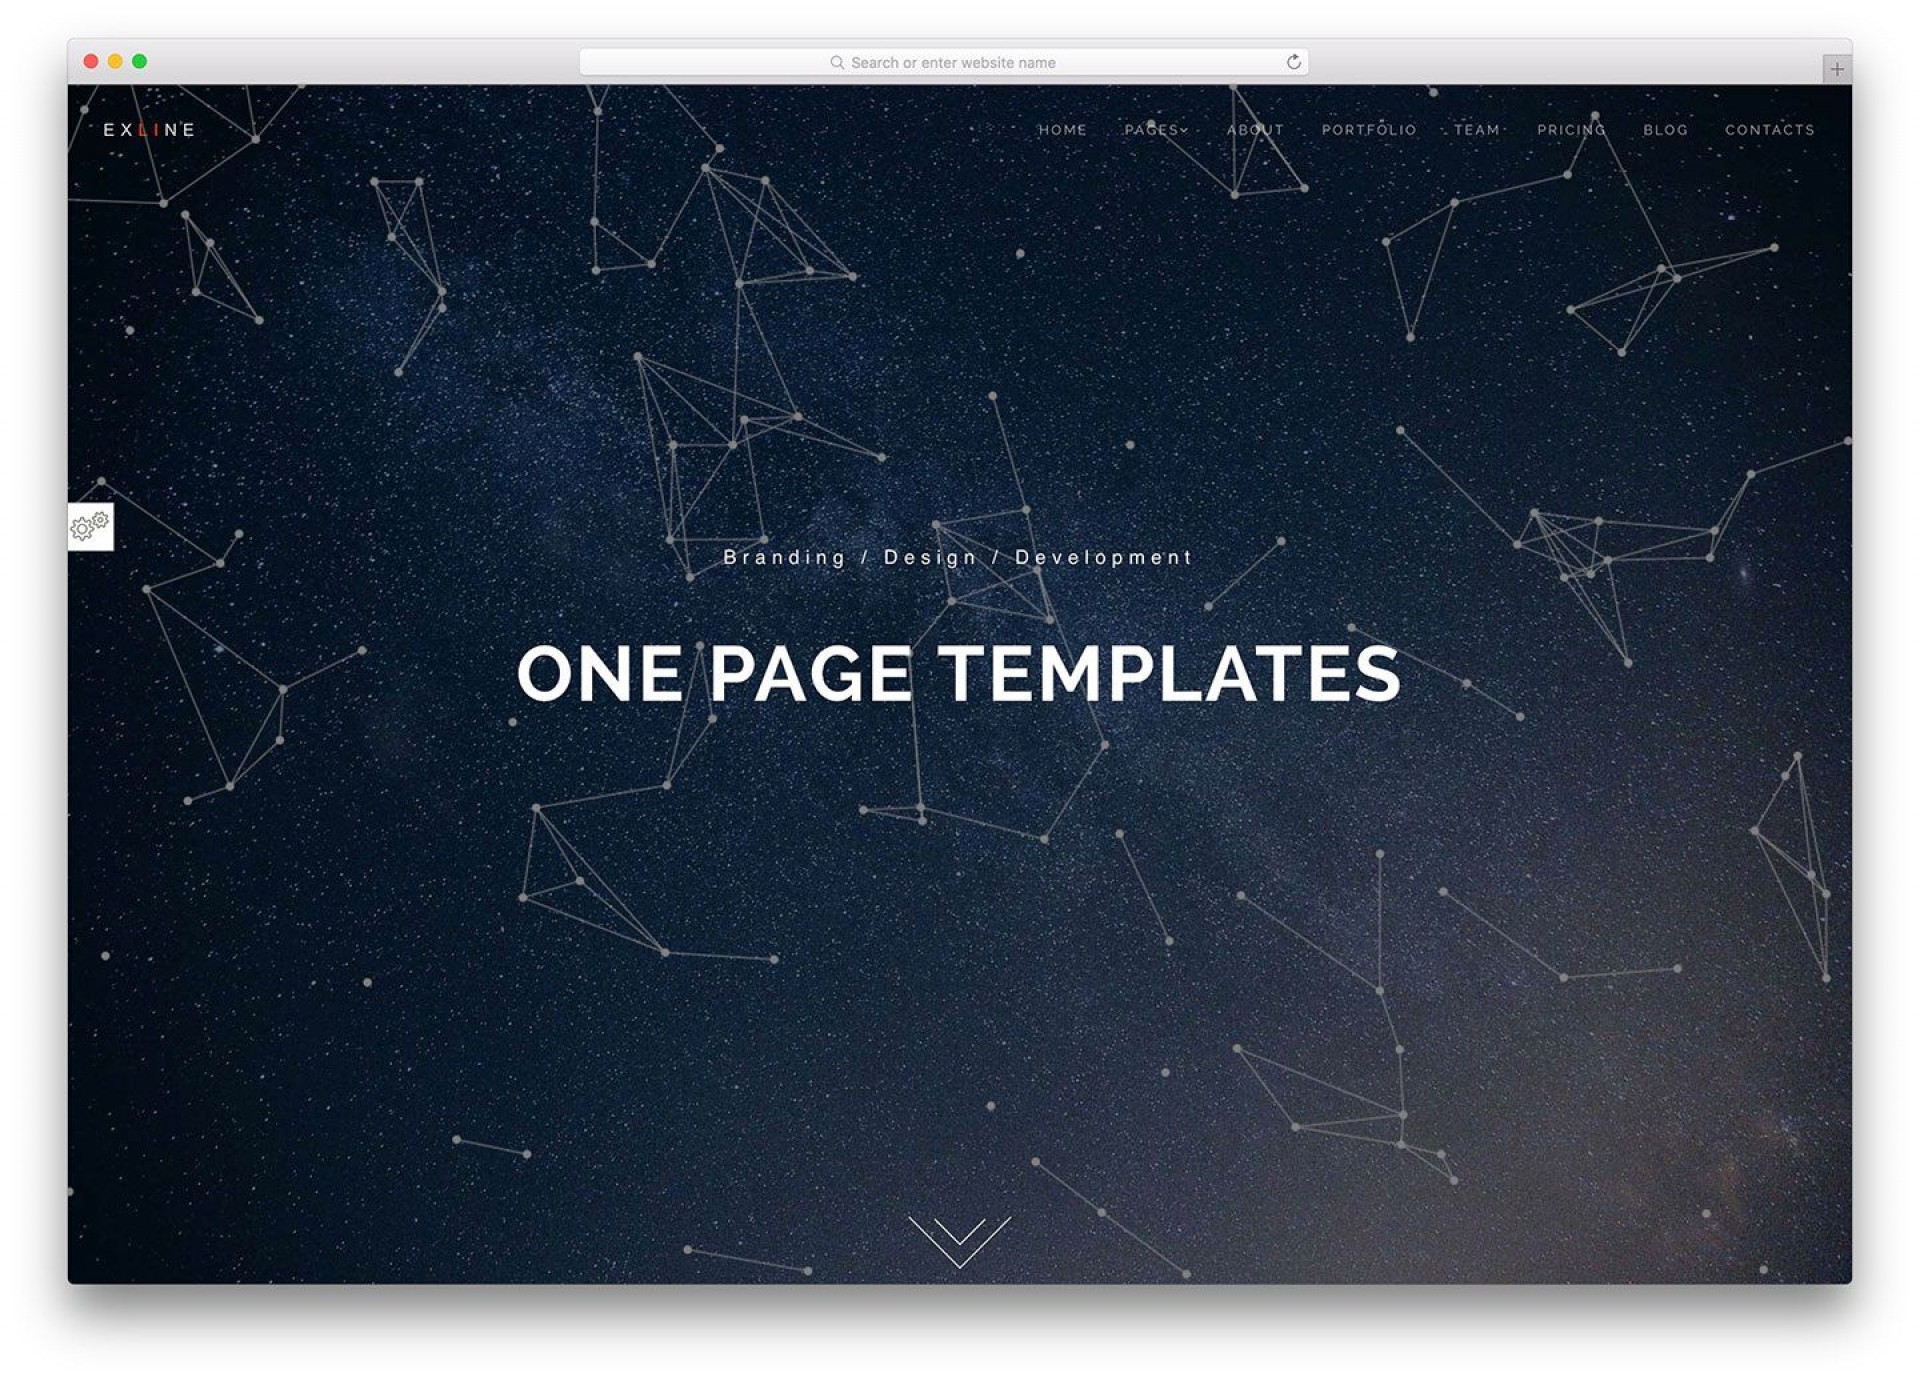 004 Unusual One Page Website Template Free Download Wordpres High Definition  Wordpress1920